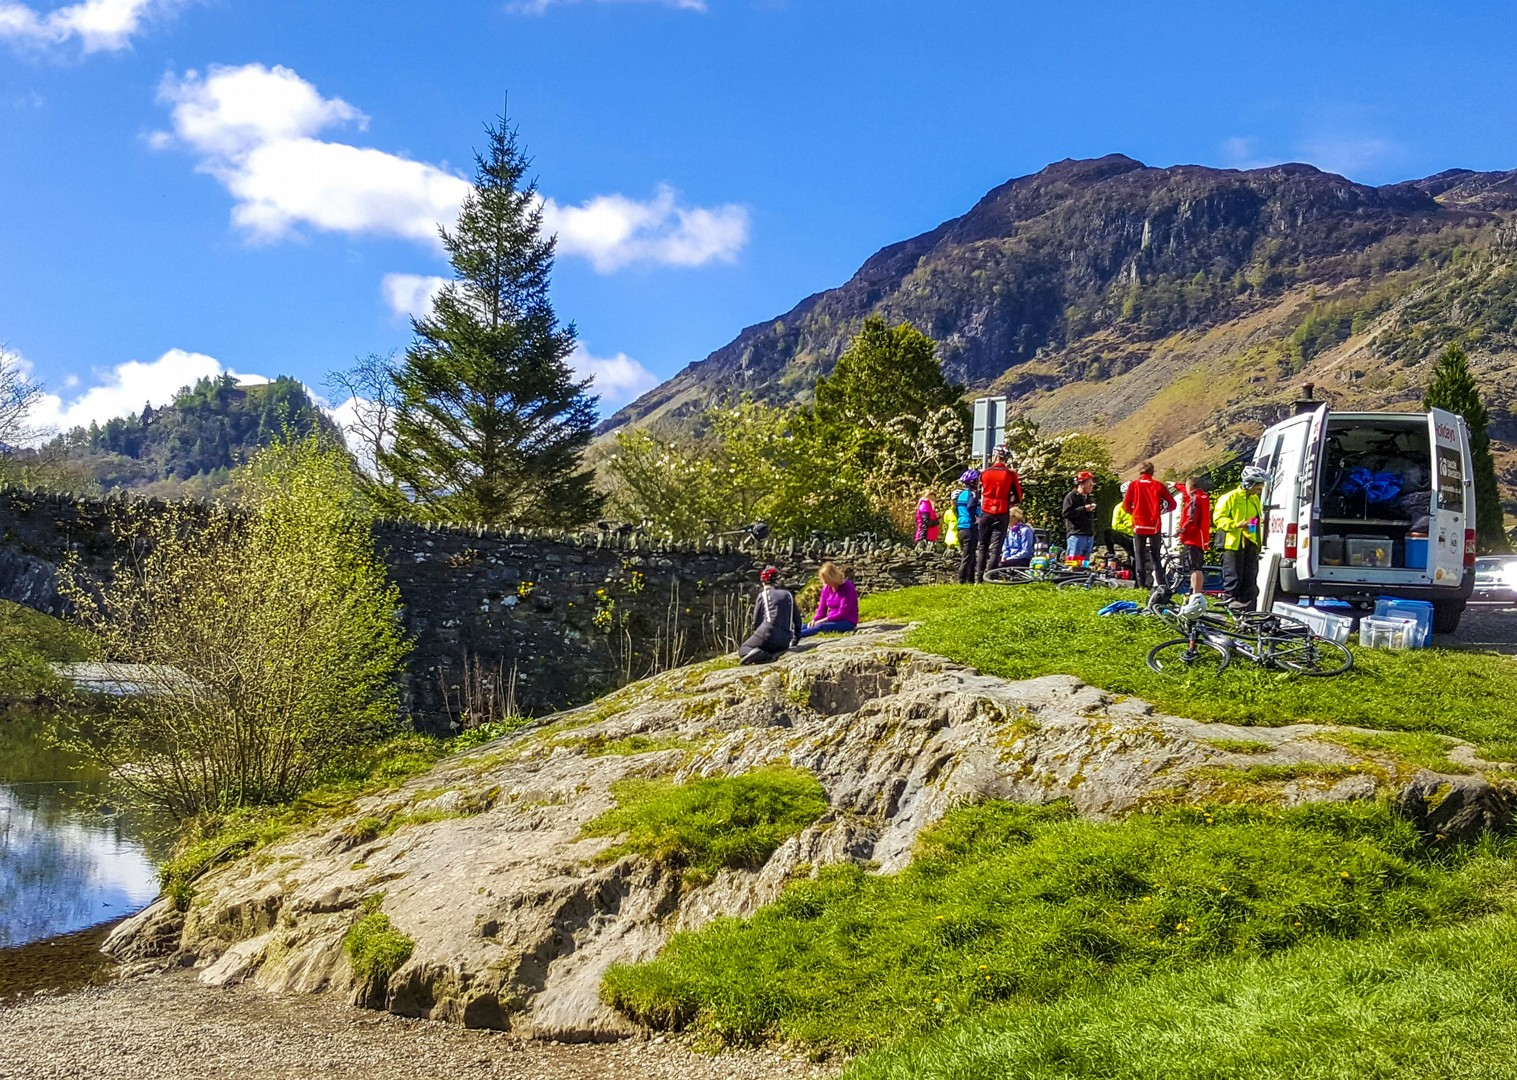 guided-cycling-tour-lake-district-derwent-lakes-group-holiday.jpg - UK - Lake District - Derwent Water - Guided Leisure Cycling Holiday - Leisure Cycling